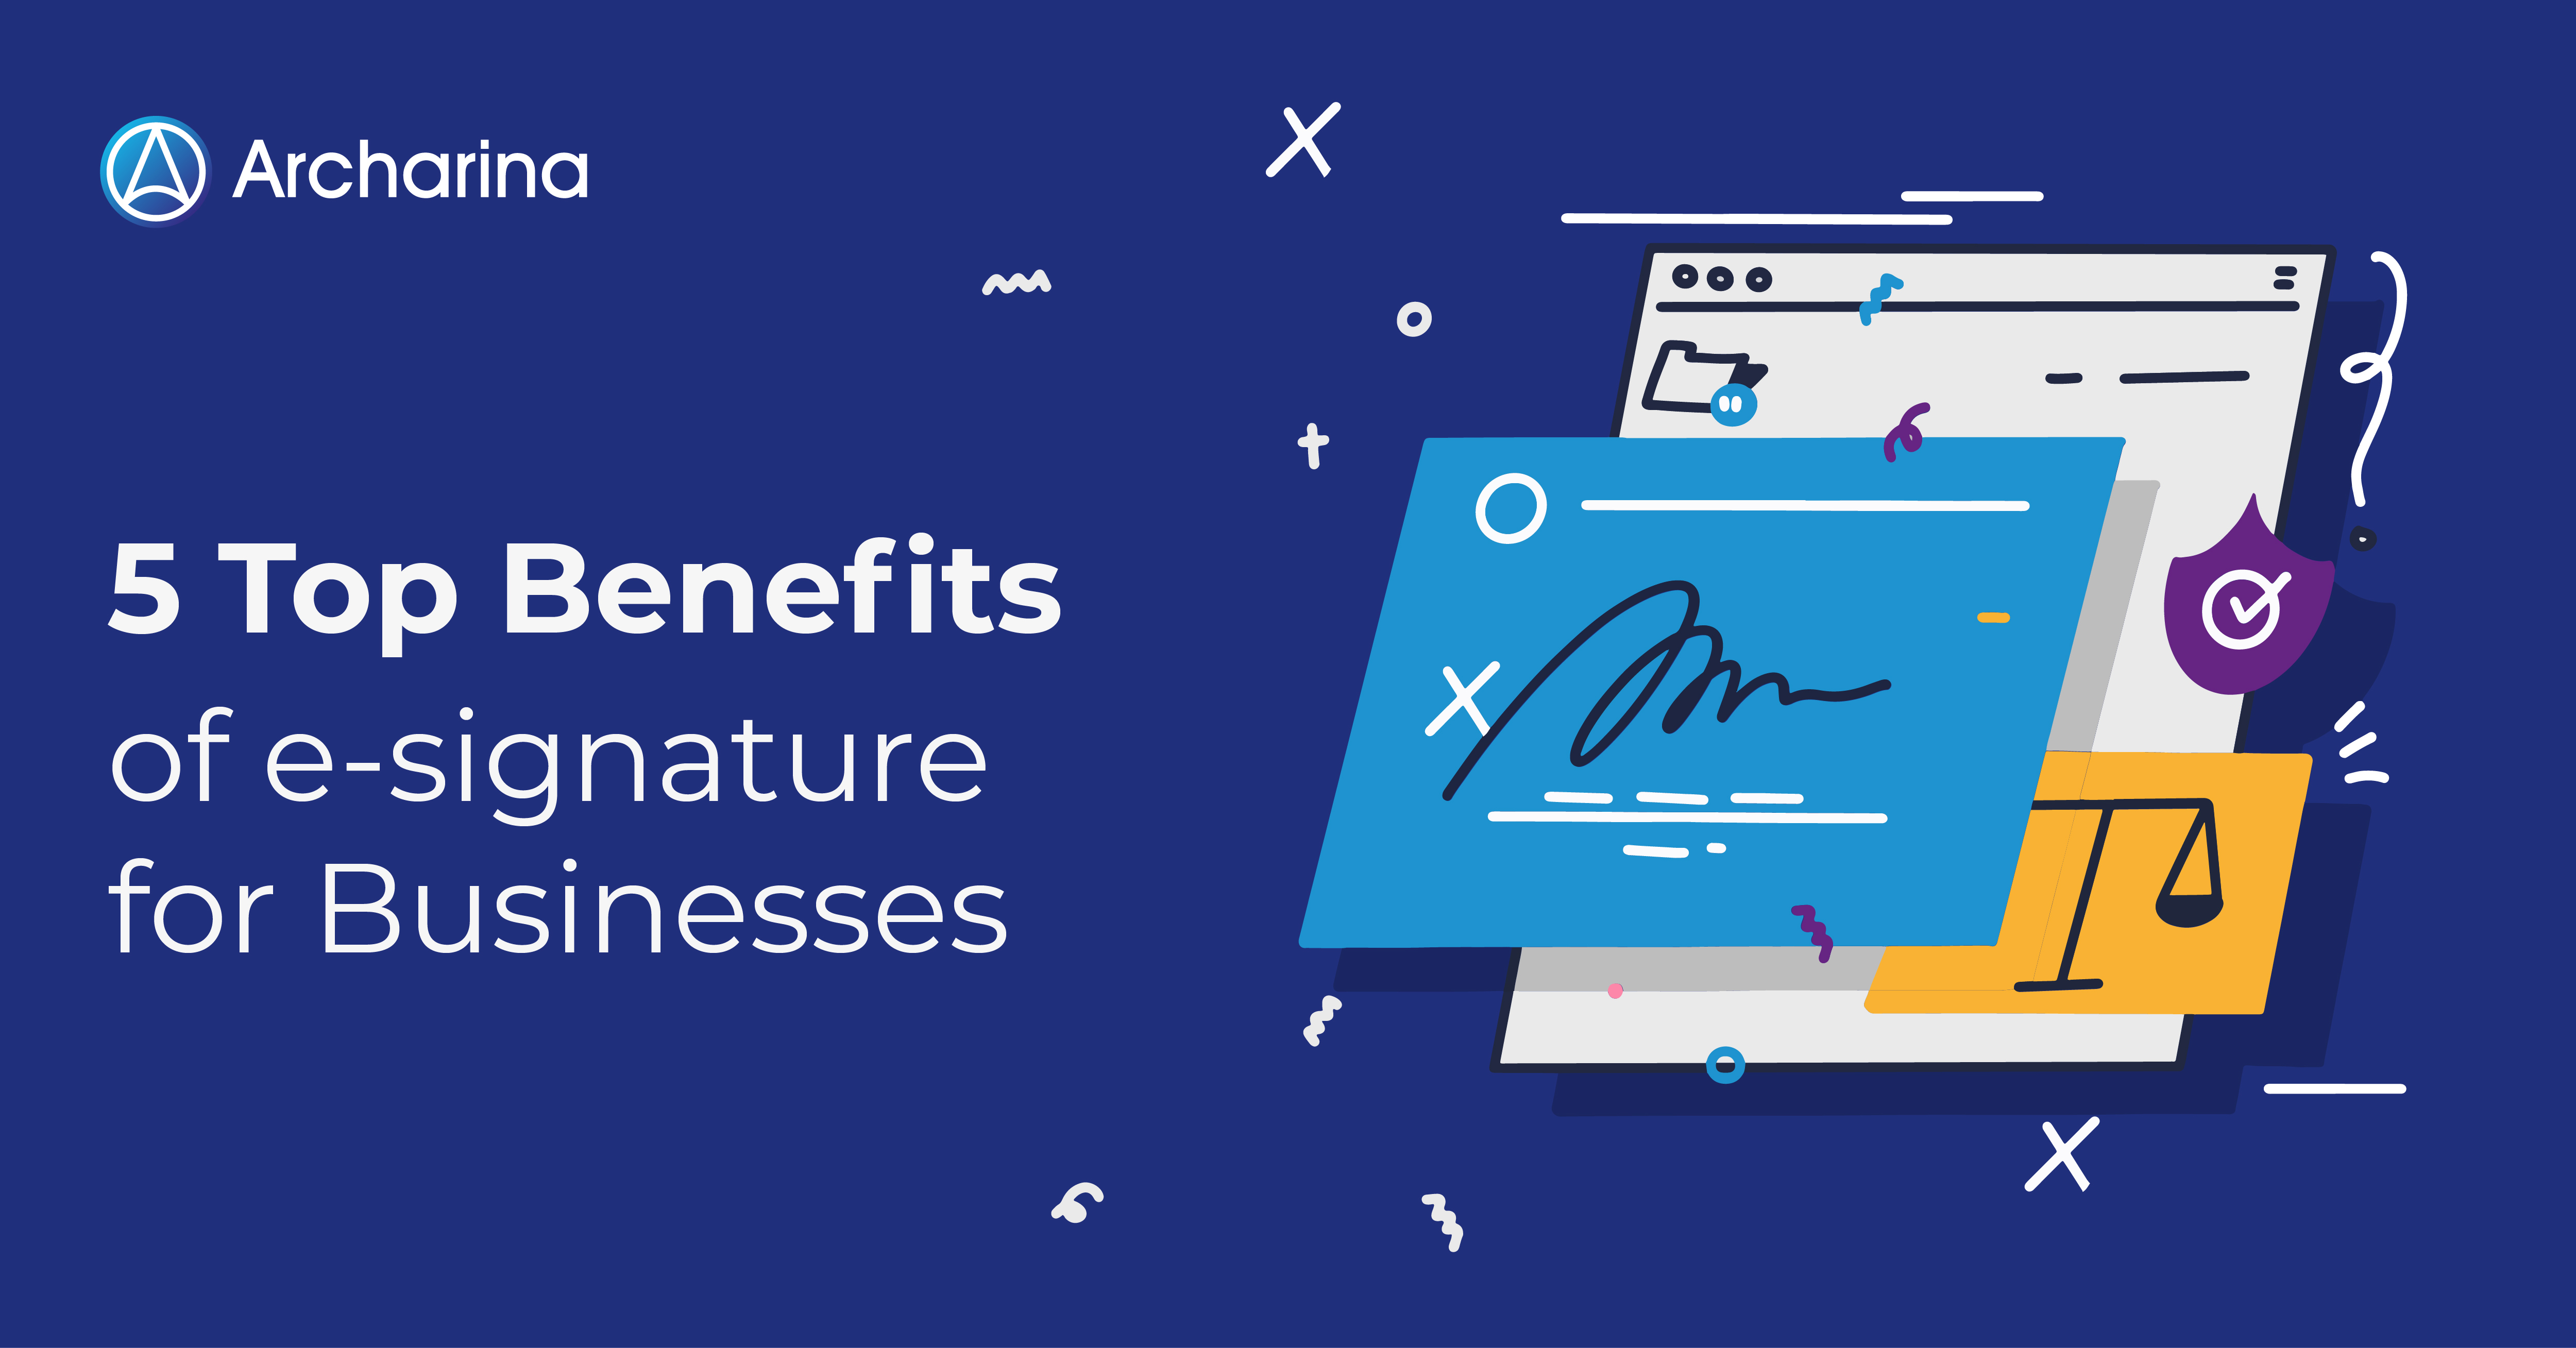 5 Top Benefits of e-signature for Businesses